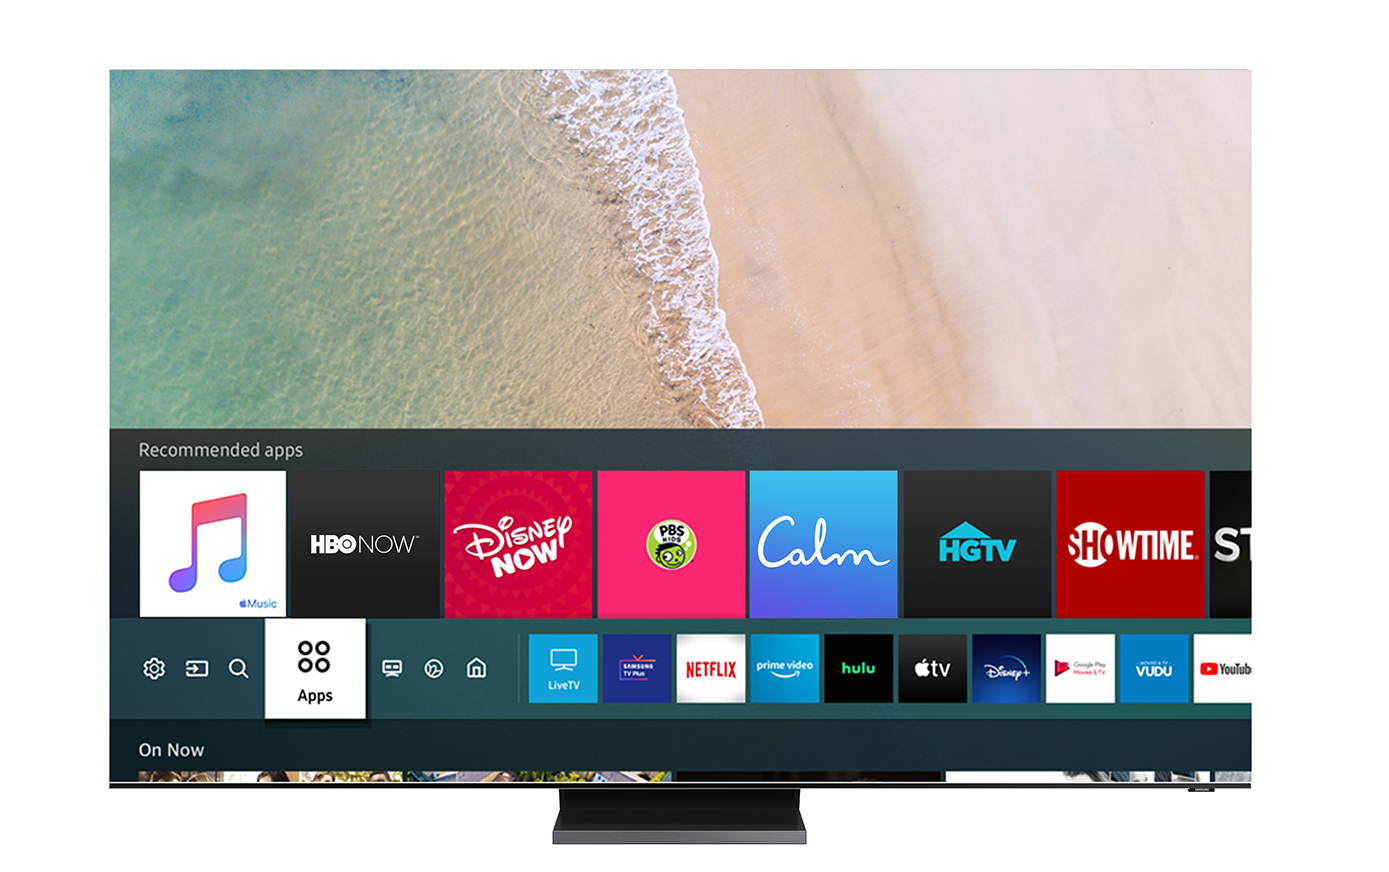 Samsung Smart TV User Interface featuring Apply Music icon.